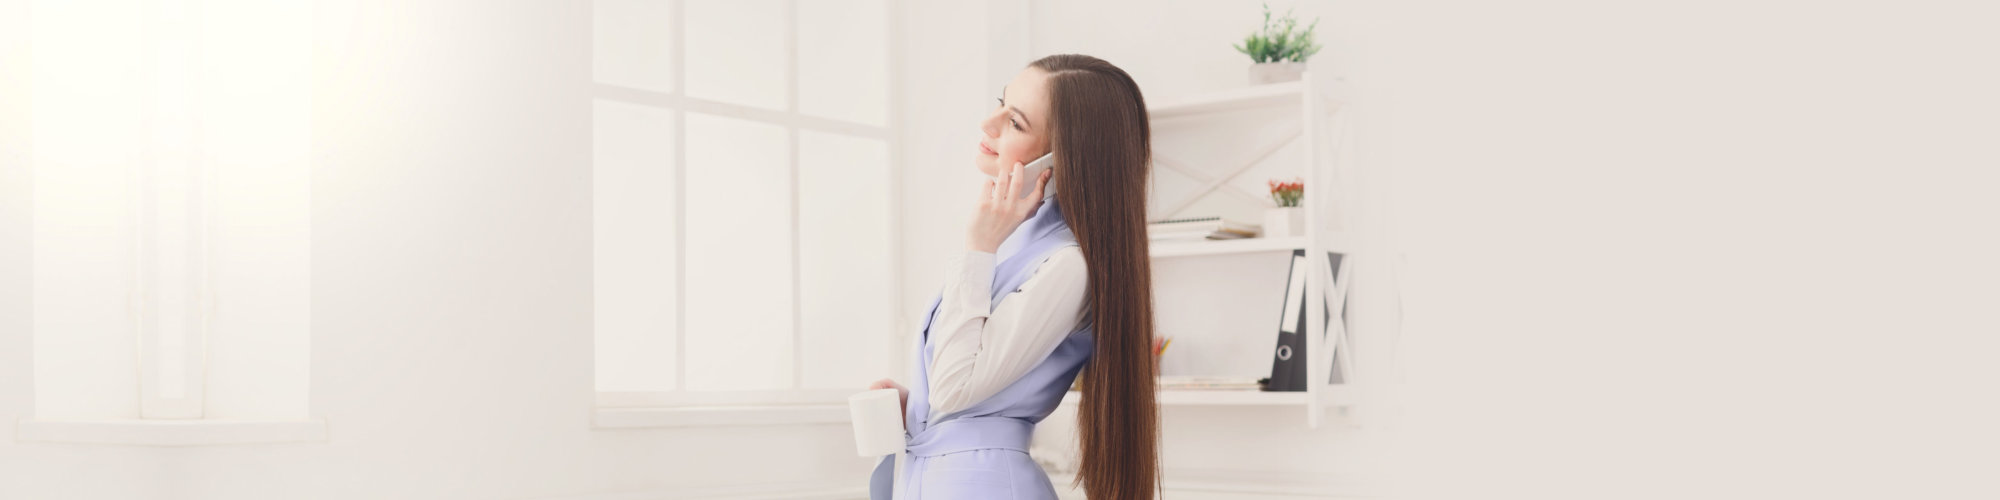 Smiling business woman talking by phone near window at office workplace, copy space.